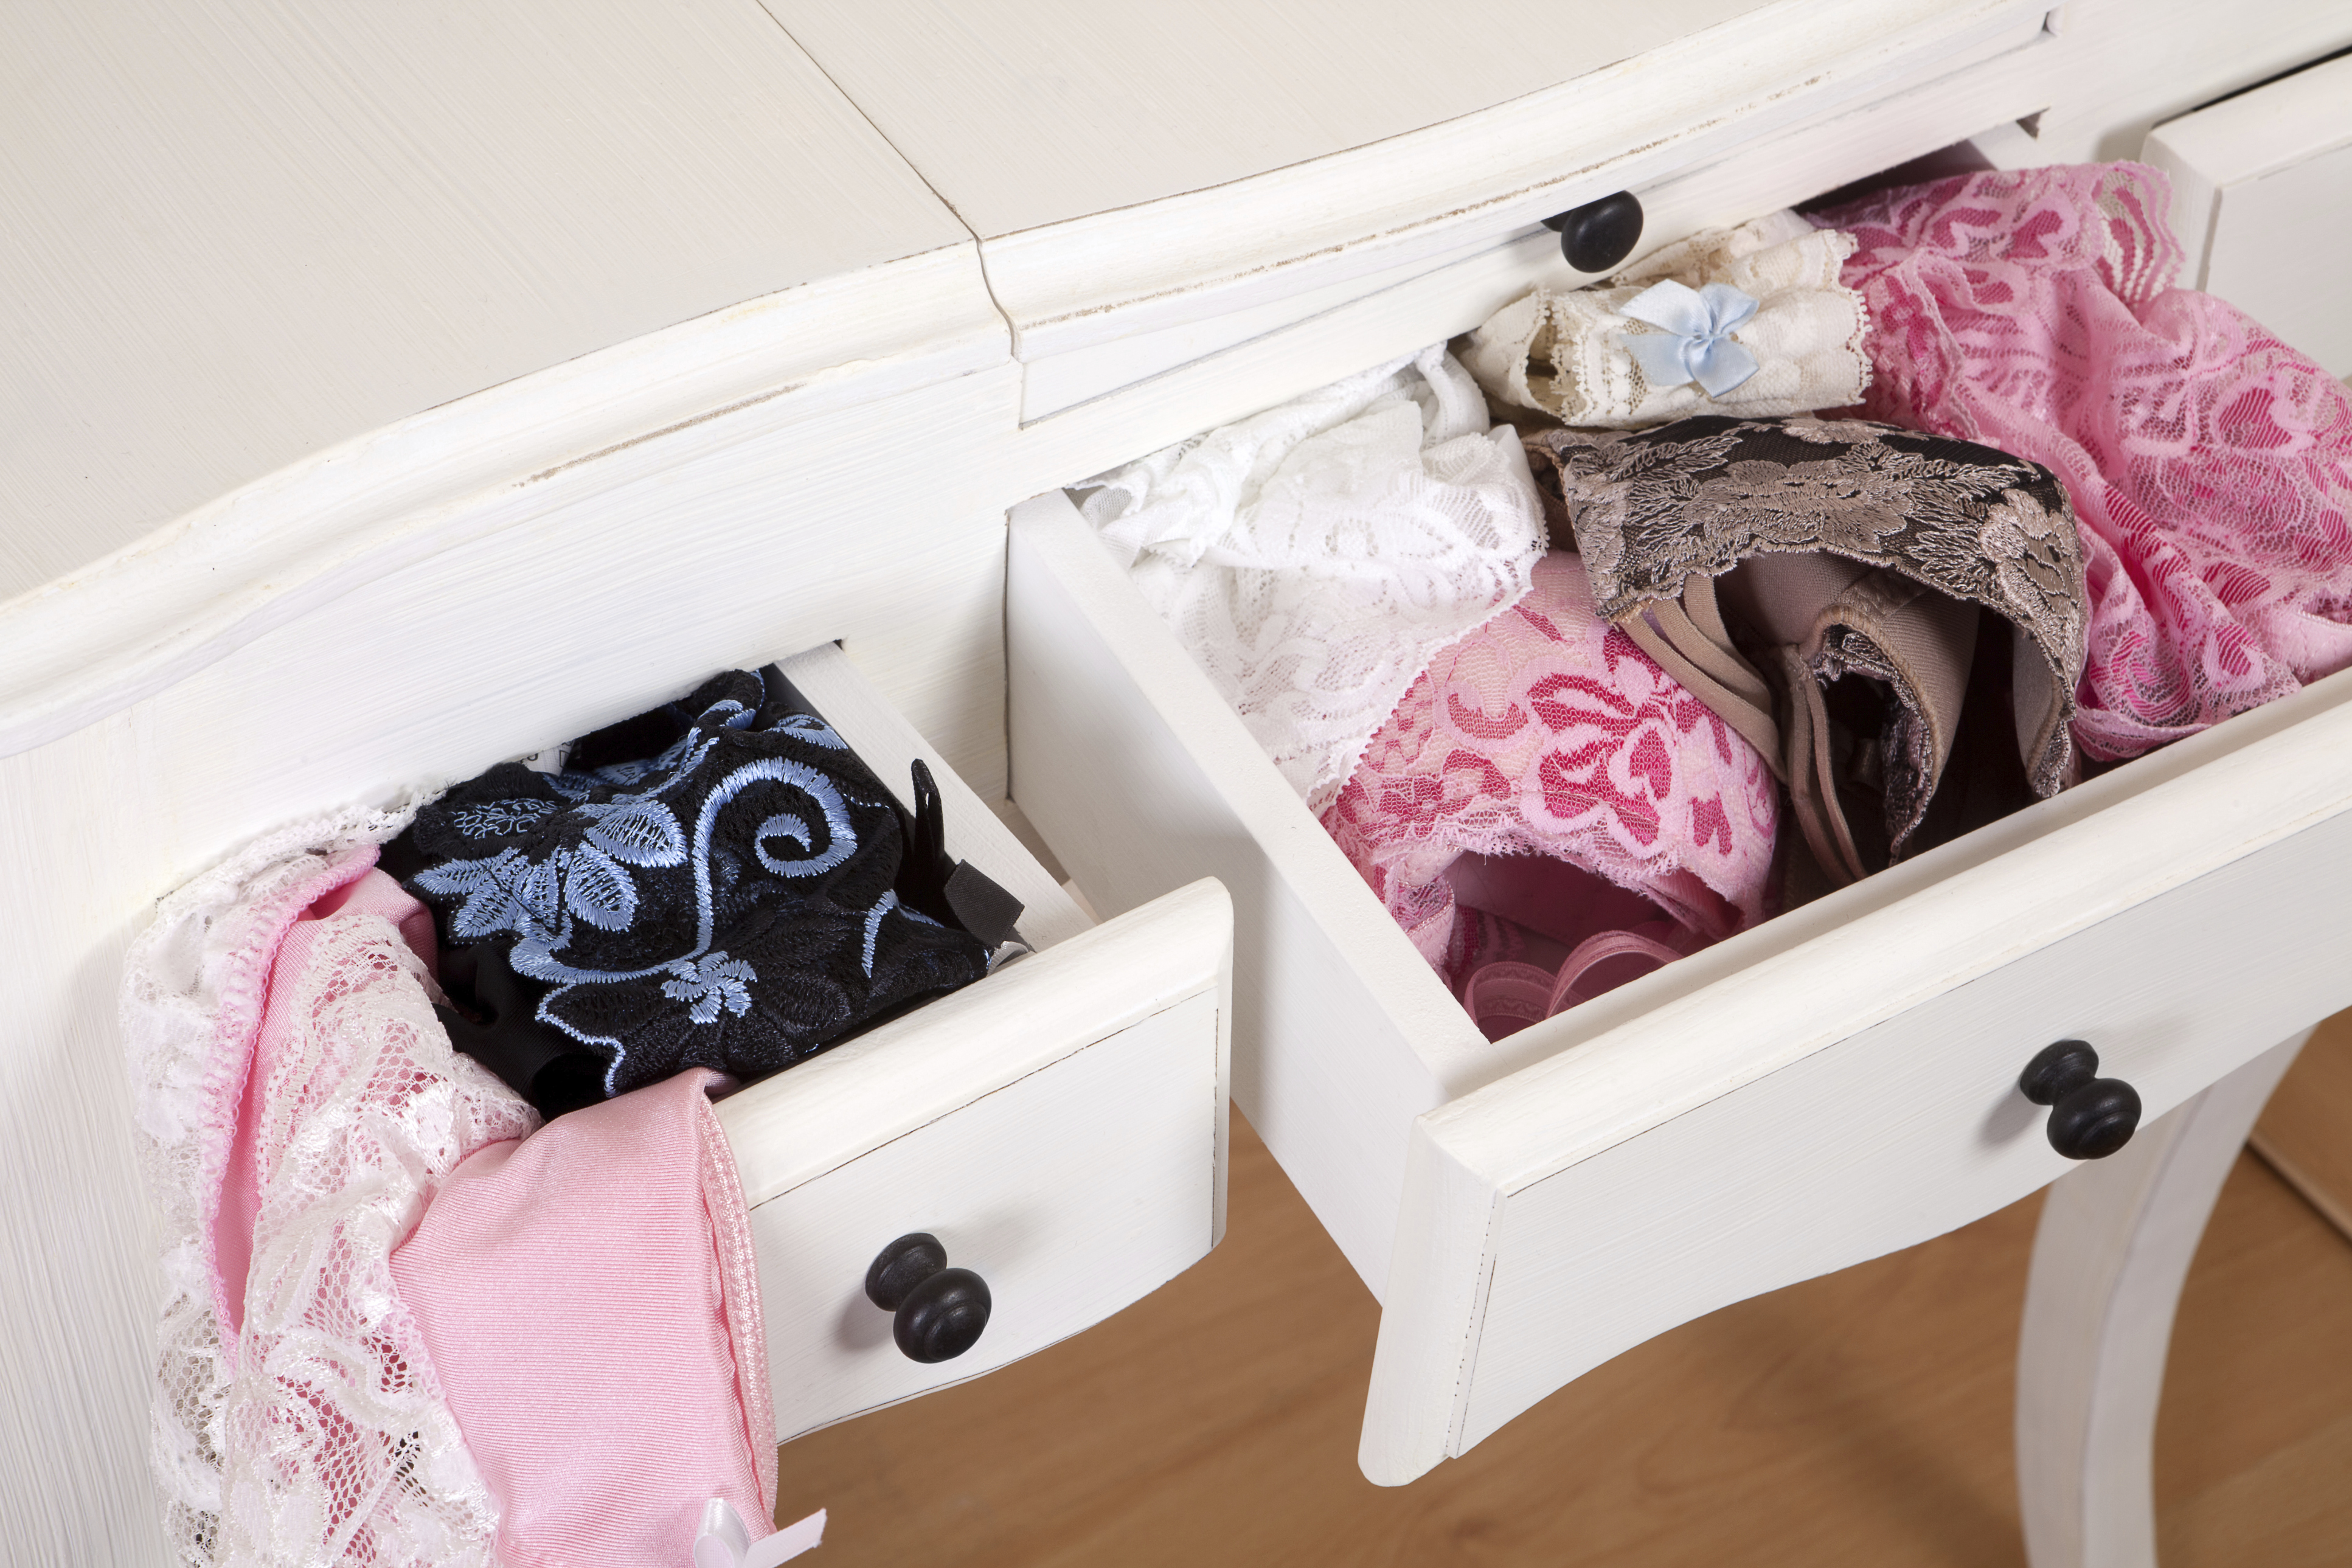 free today home chest overstock gracewood drawer lingerie garden product aristo hollow shipping